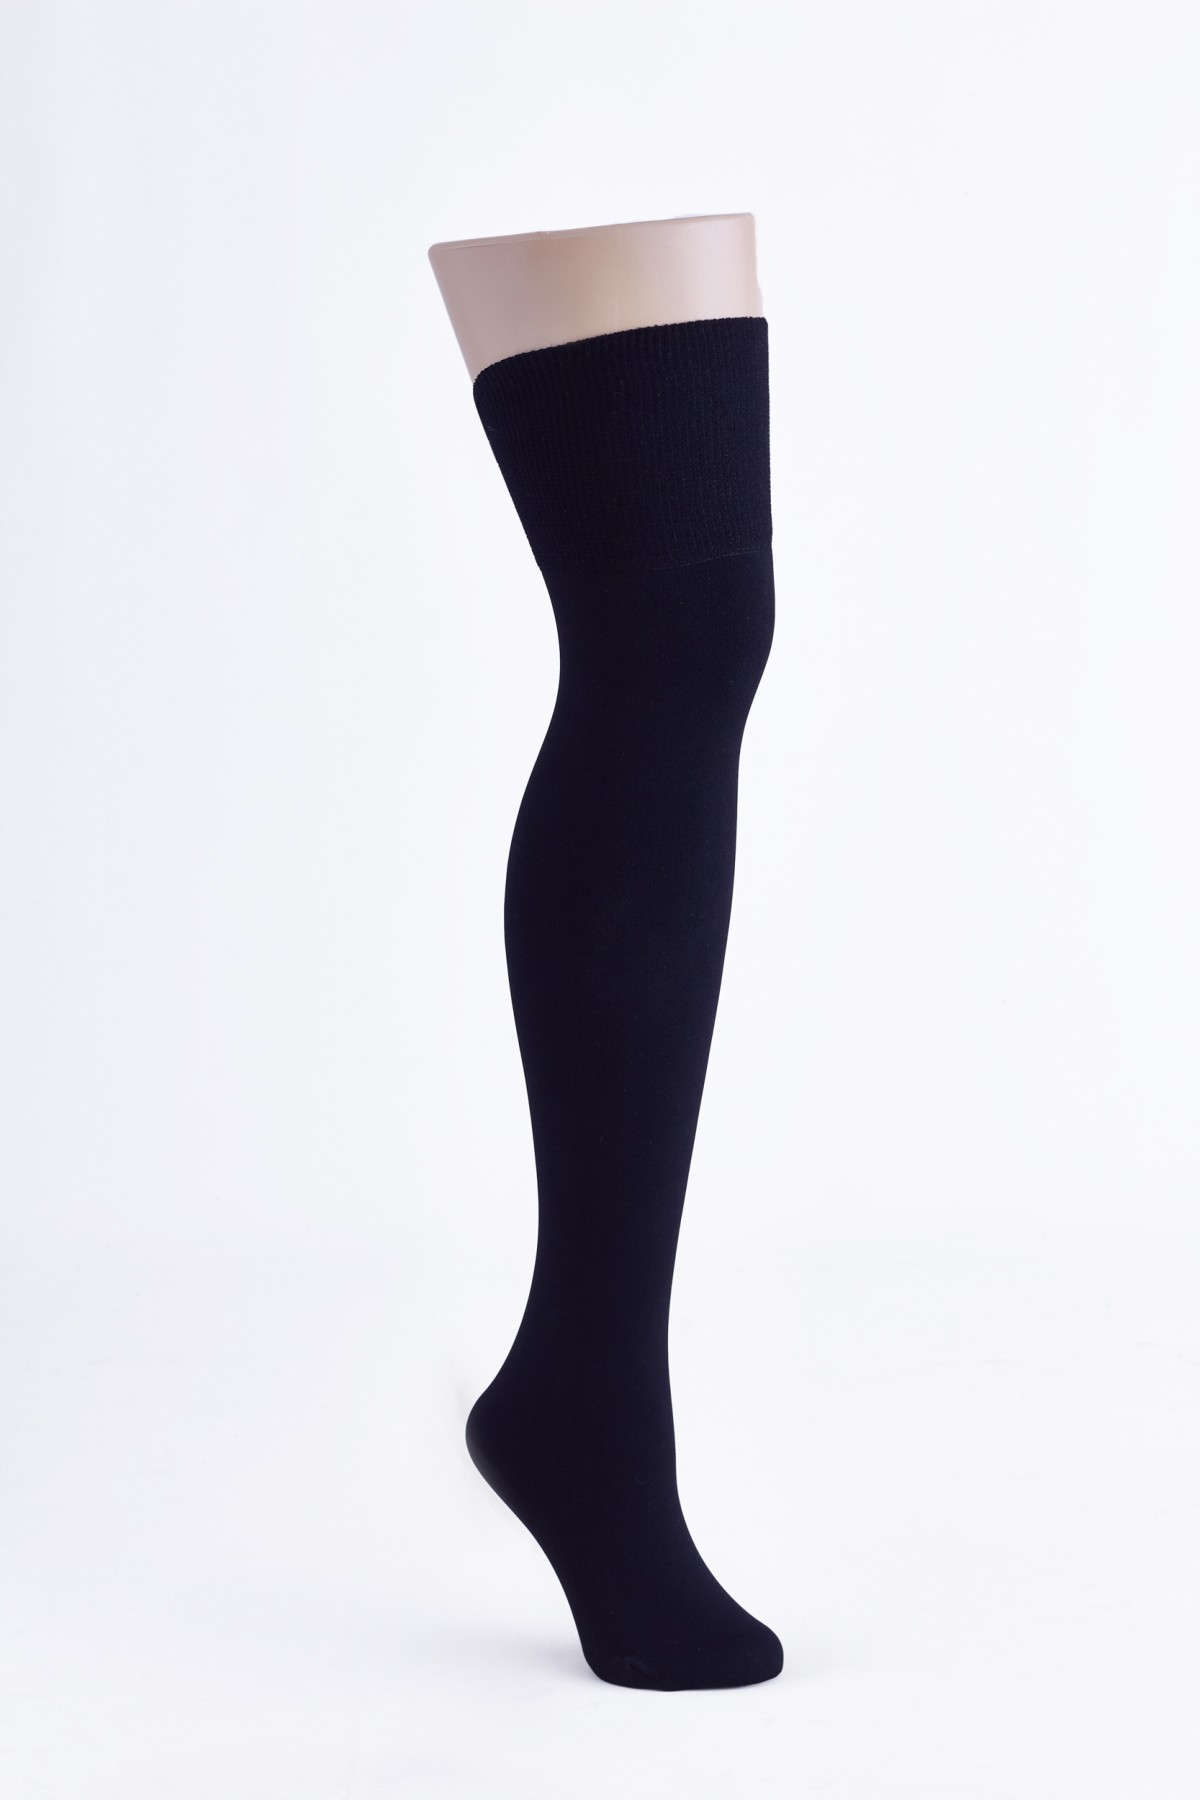 120 DEN THERMAL WOMAN OVER THE KNEE